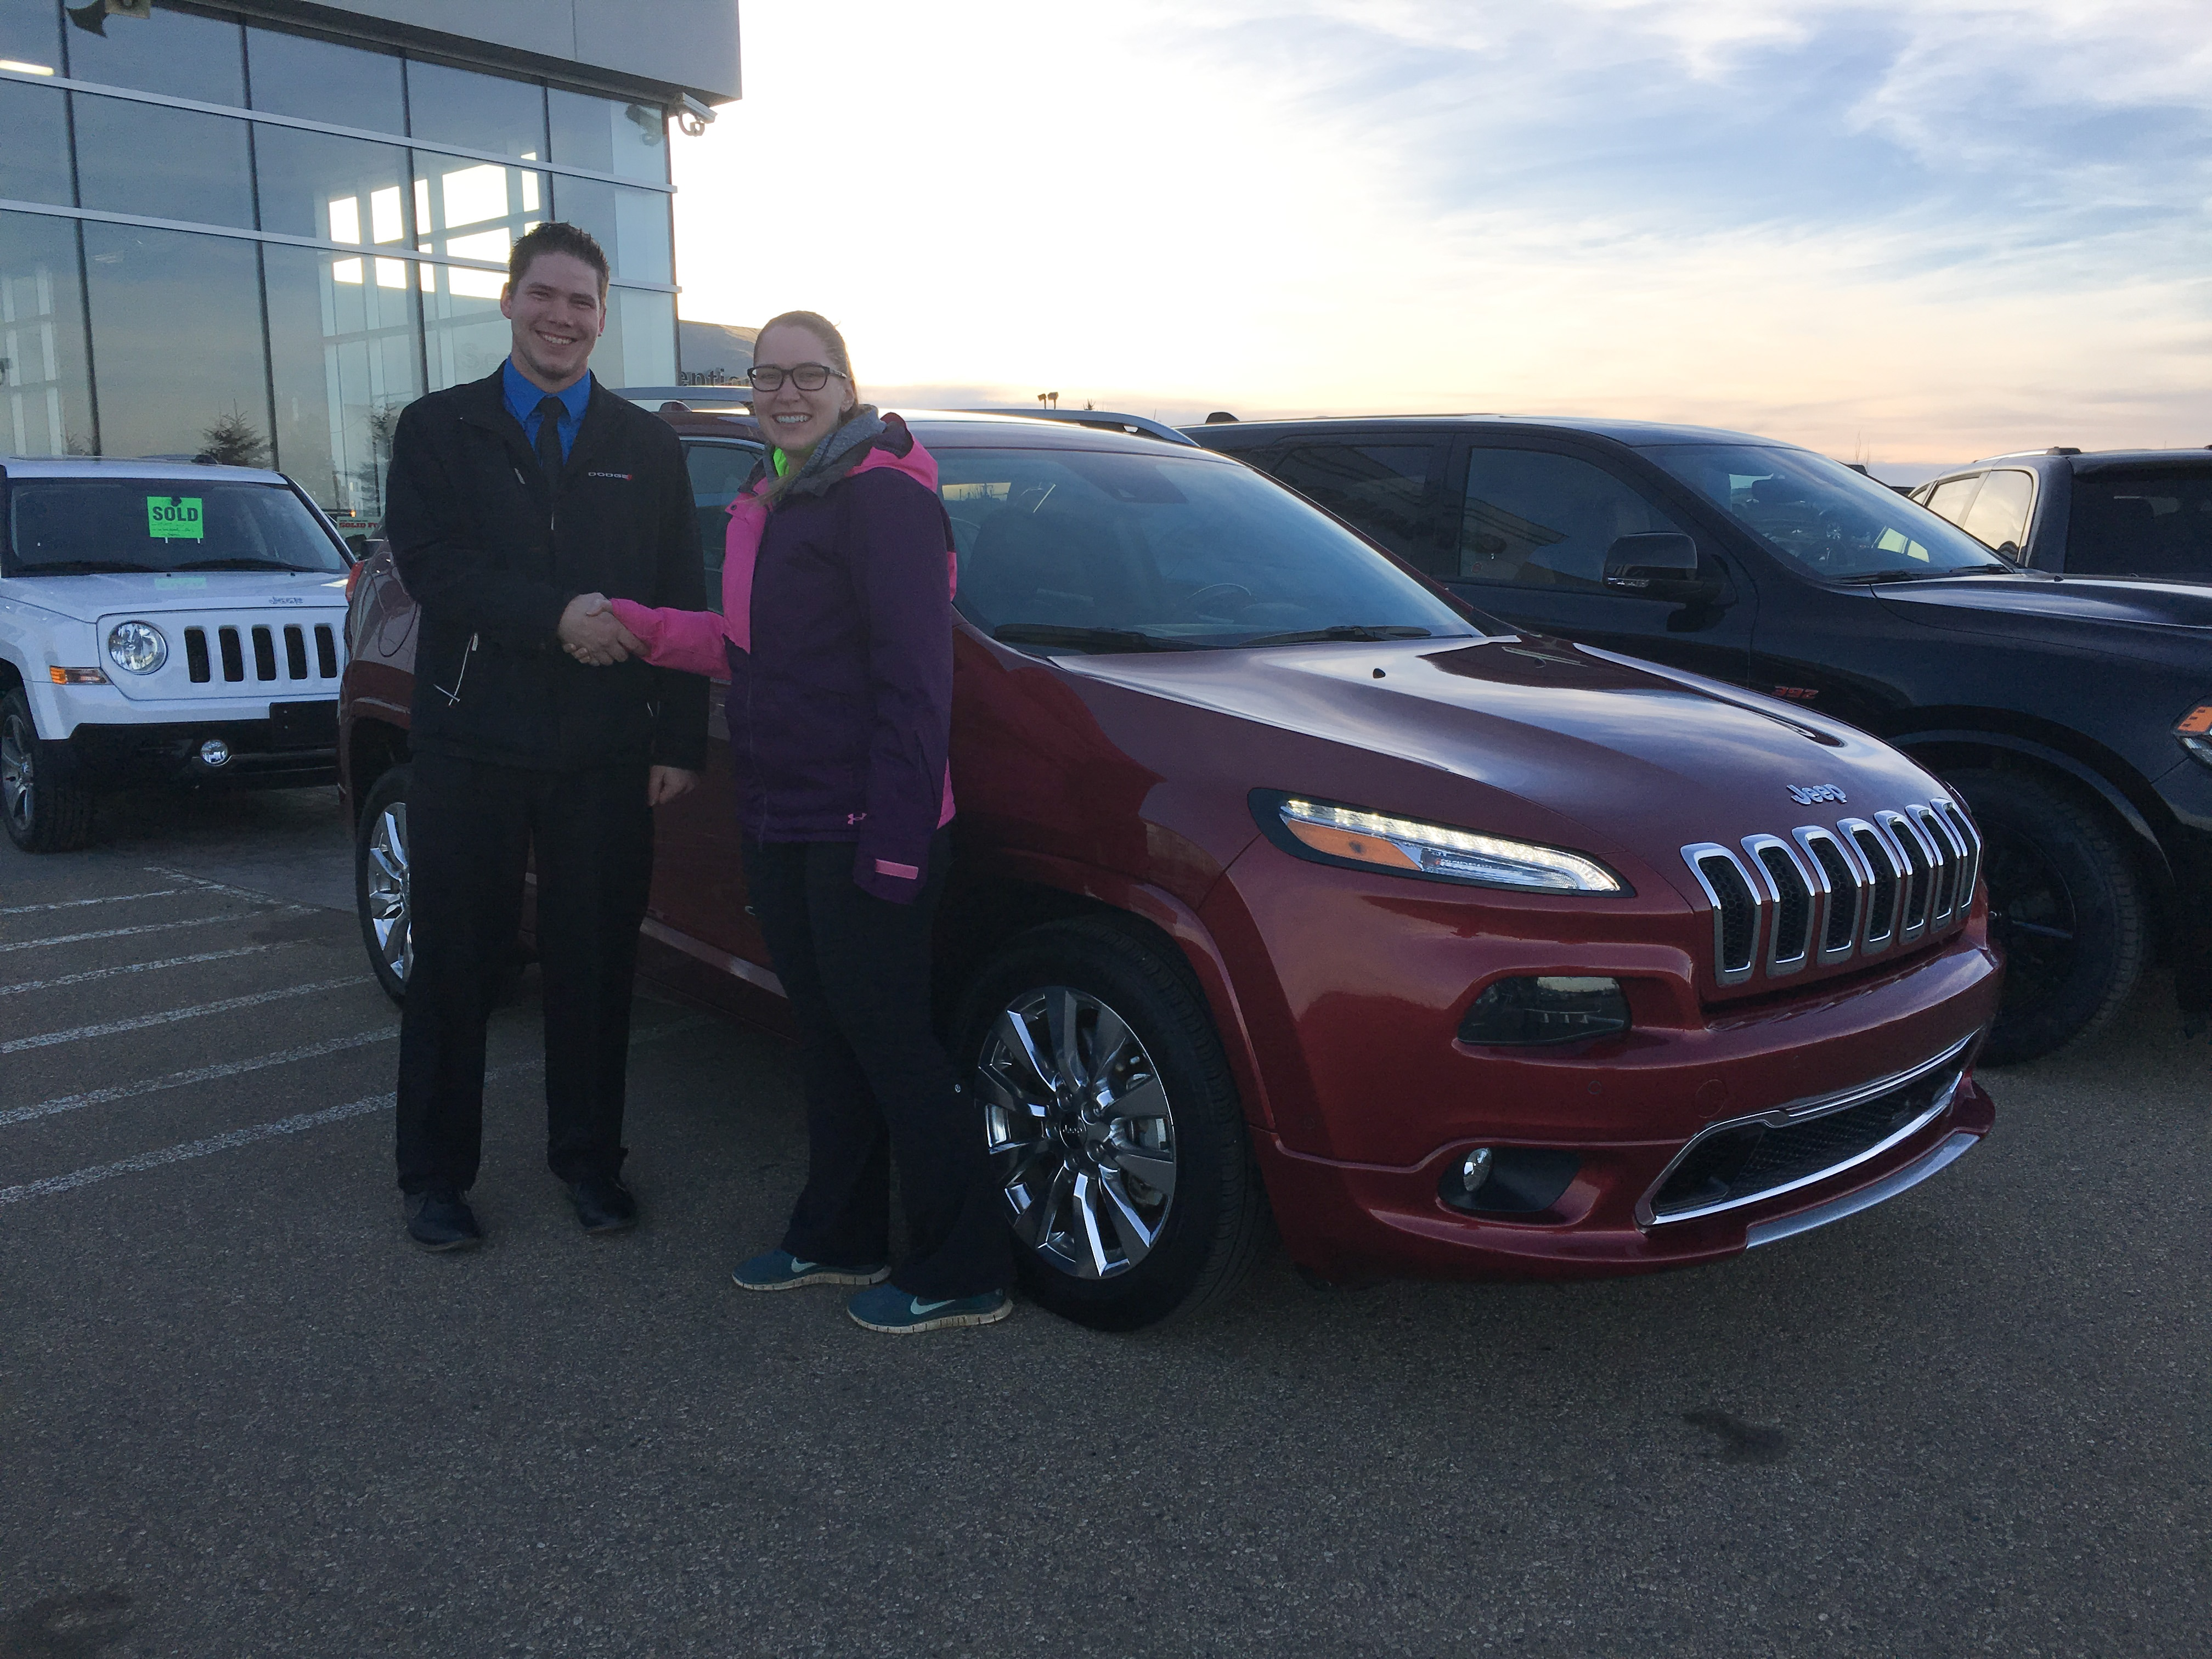 pearl velvet chrysler grand near view chreokee new htm for side larchmont limited cherokee me red sale exterior inventory jeep dealers